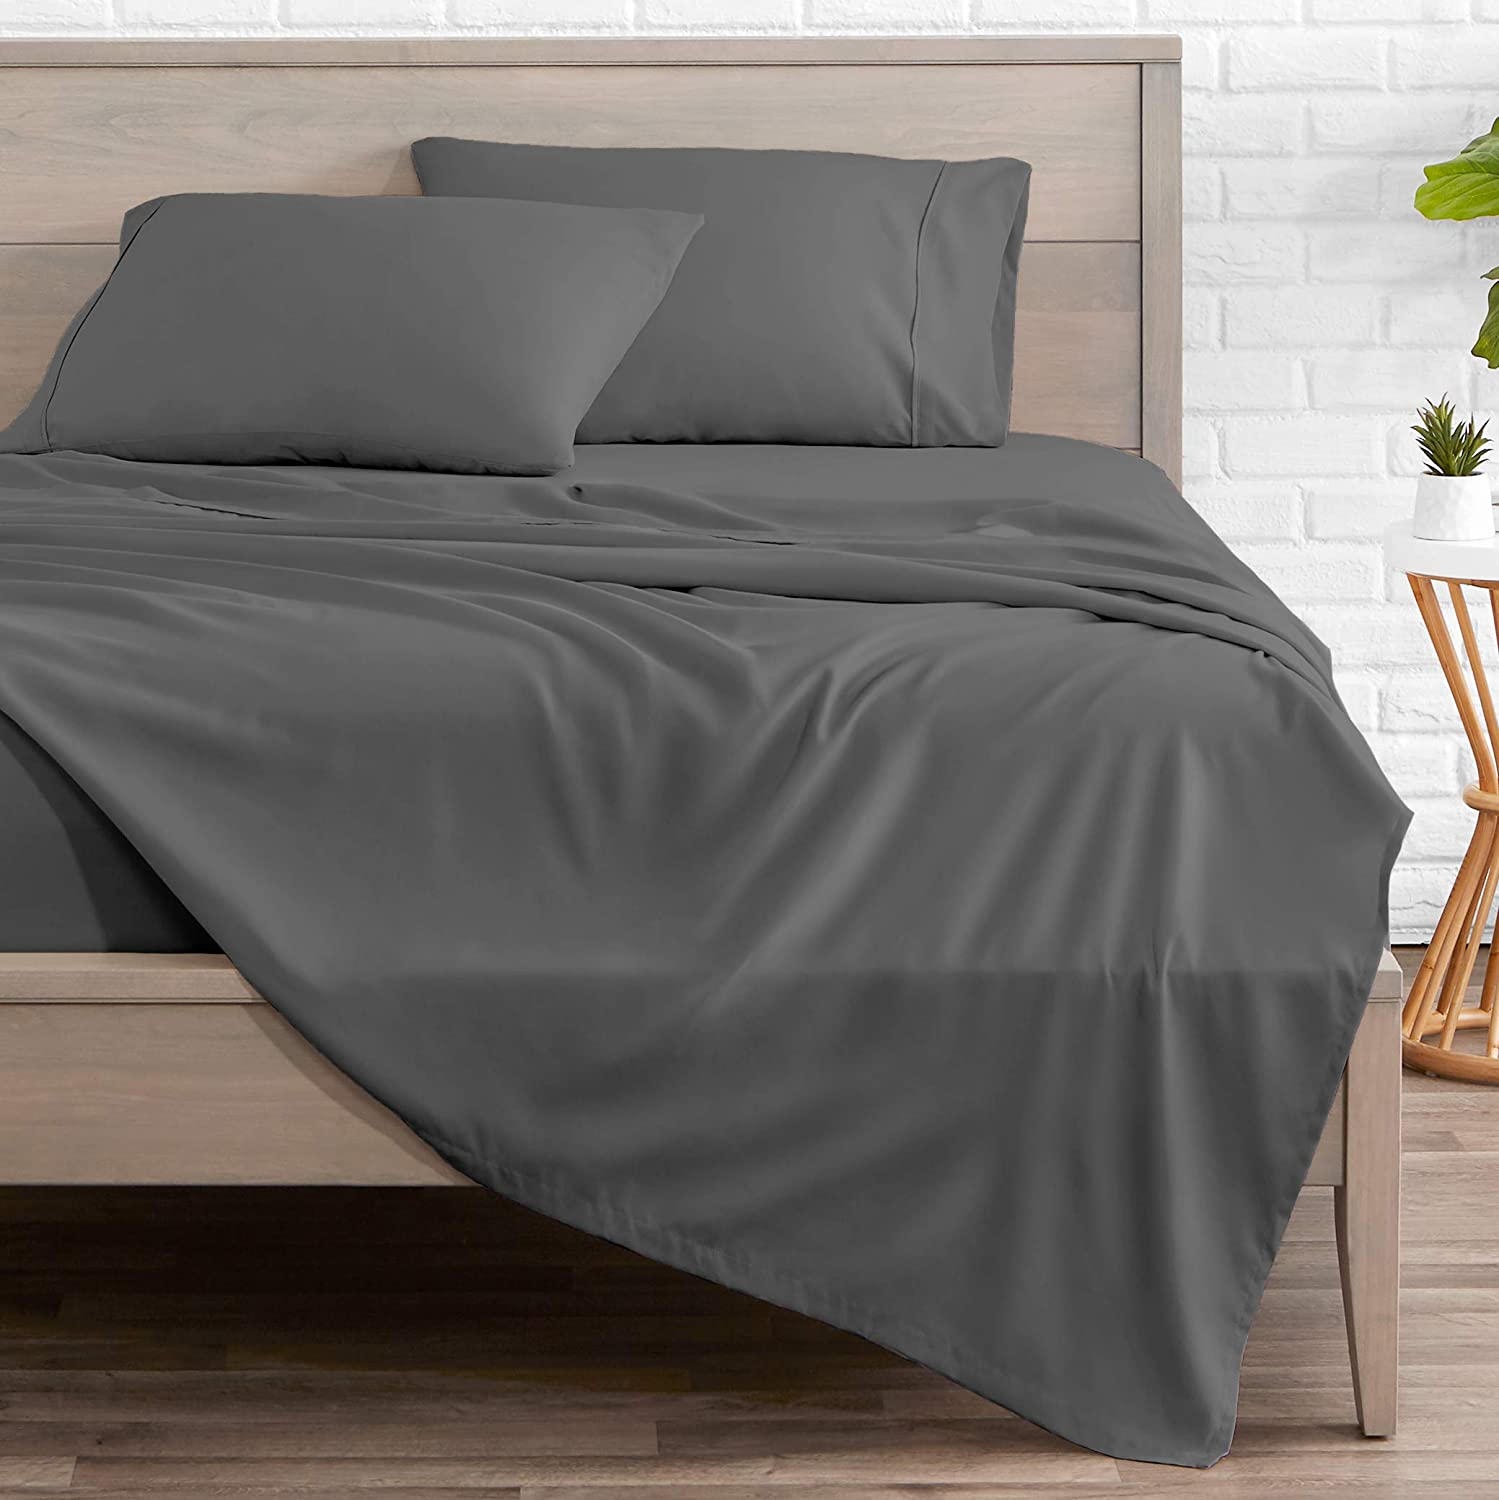 Bare Home - 1800 Ultra-Soft Microfiber Bed Sheets